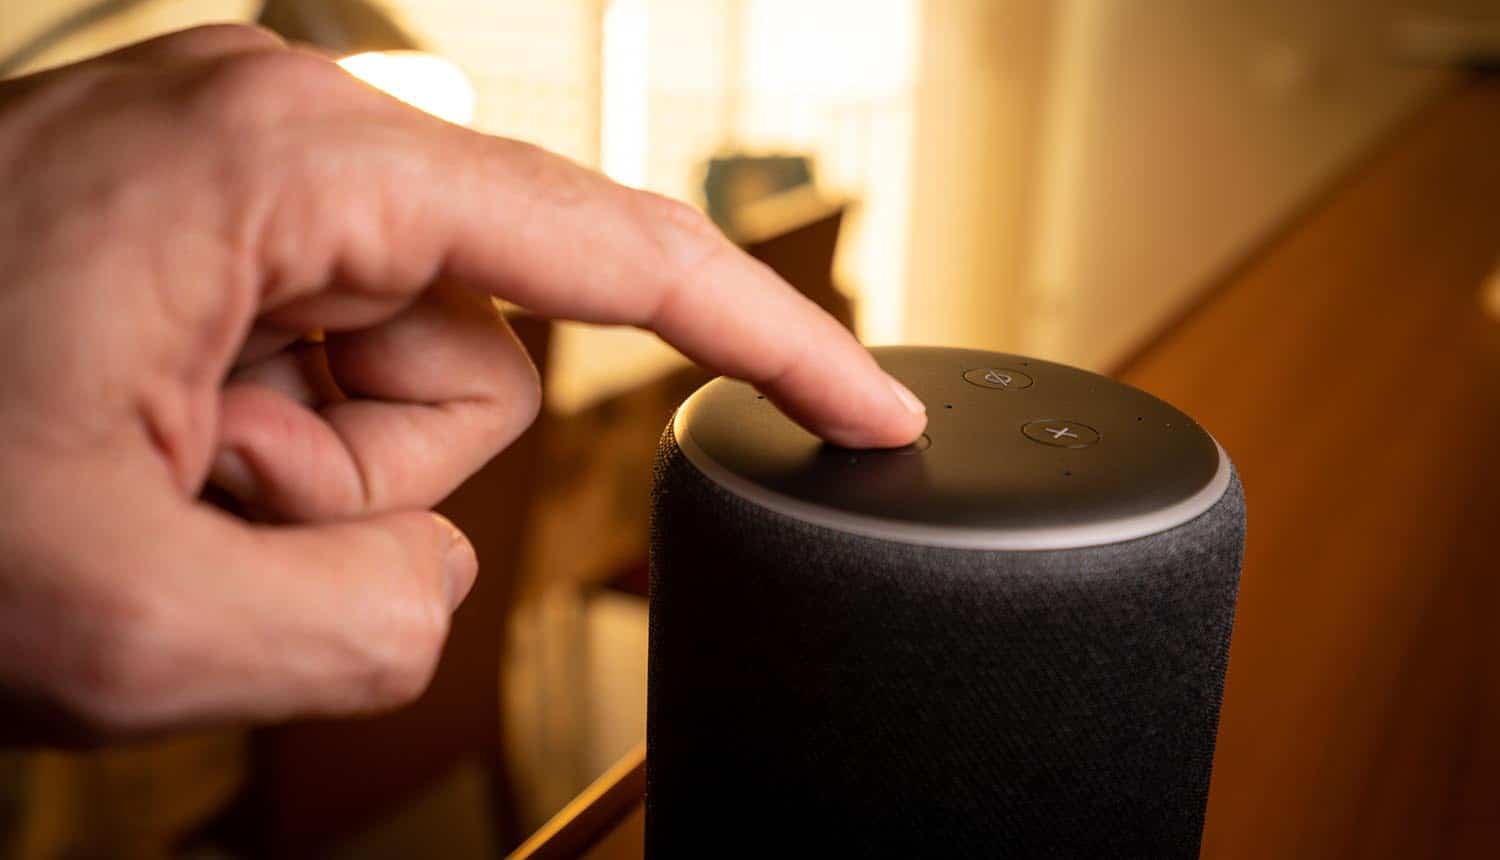 Man touching smart speakers showing the concern from Americans on the amount of data collected from smart speakers